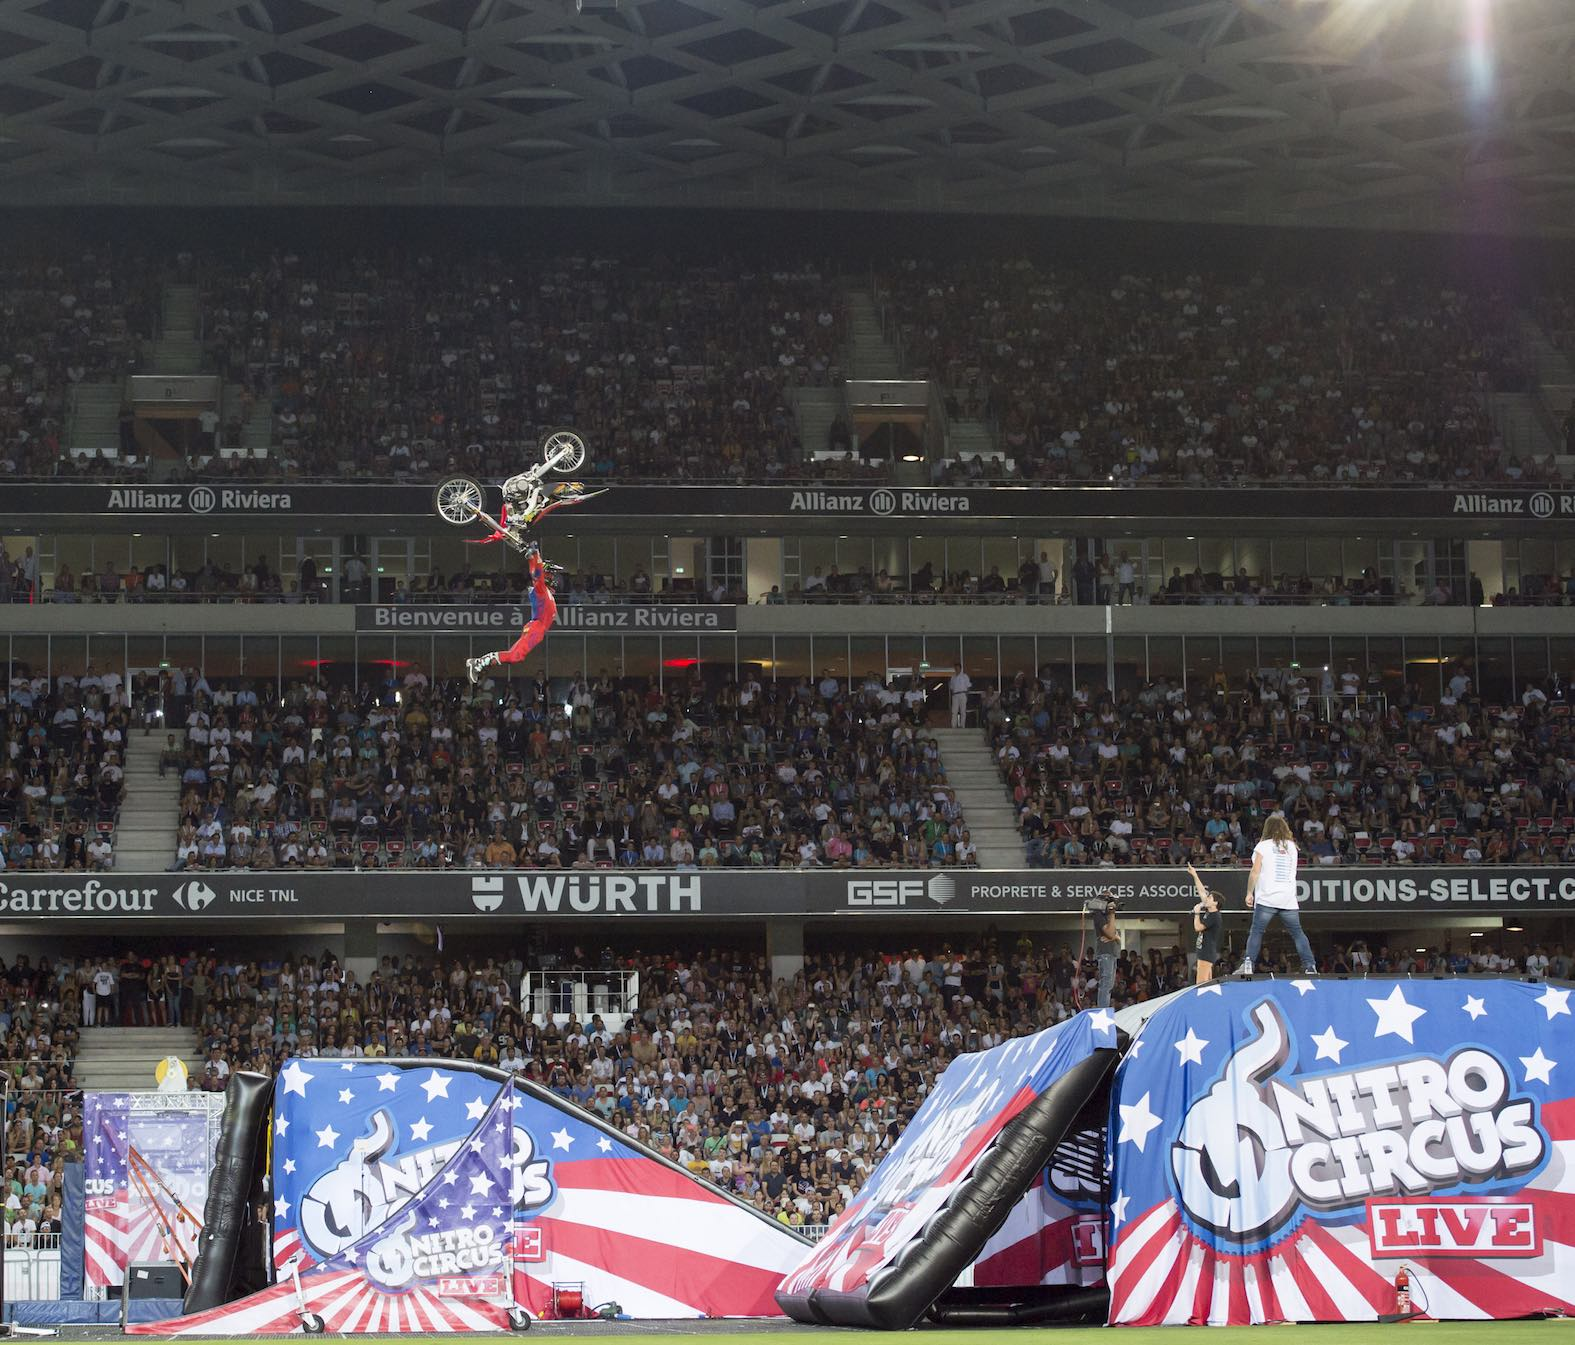 Freestyle Motocross rider Josh Sheehan performing at Nitro Circus Live South Africa